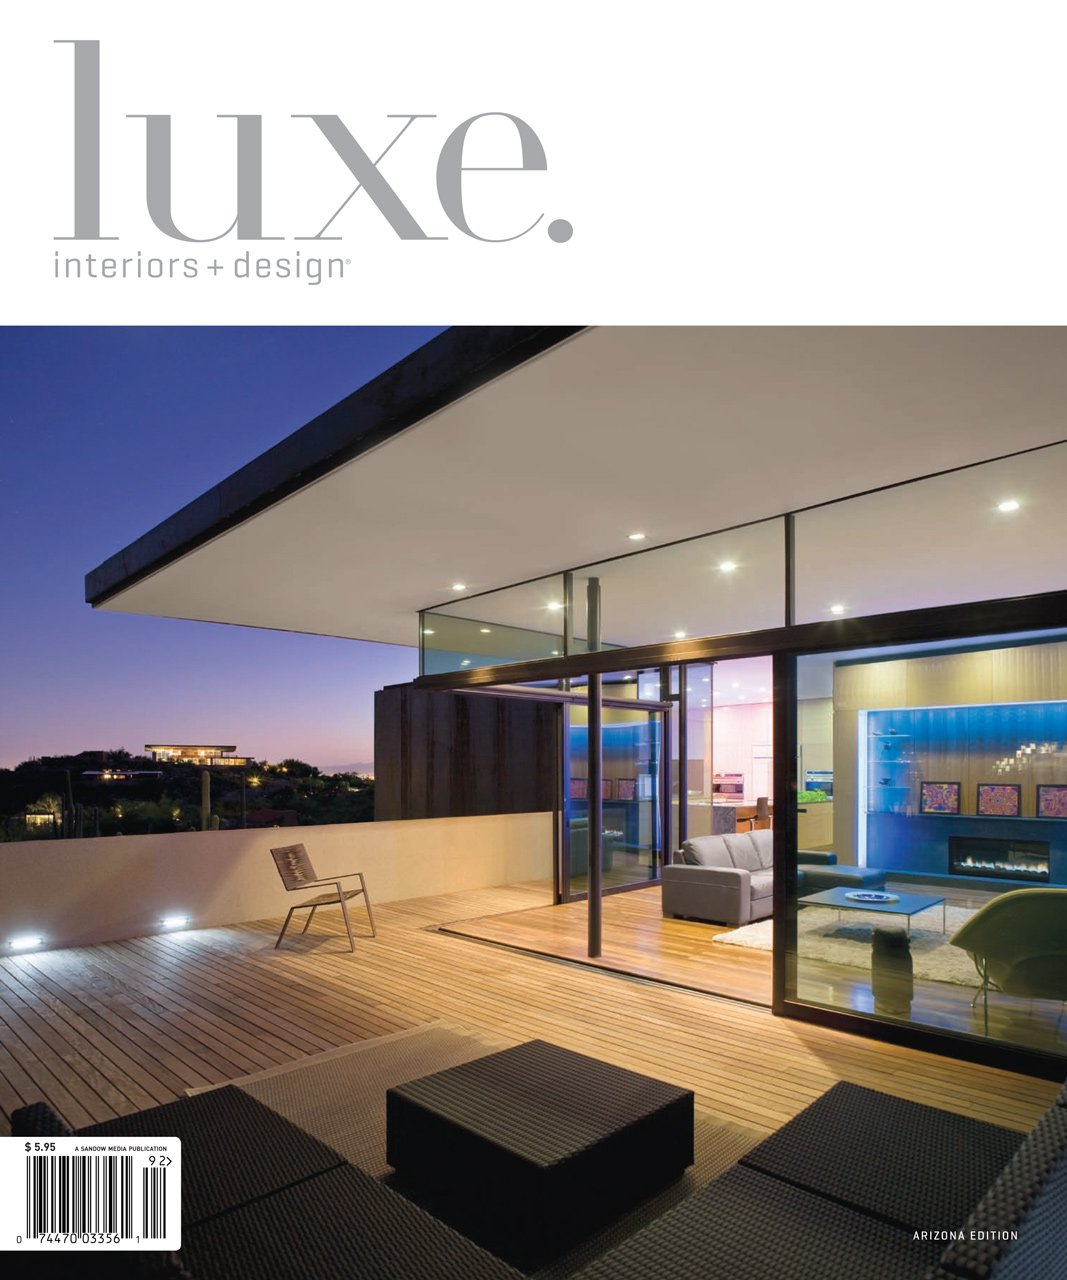 Luxe arizona features solitaire pendants at finger rock house Modern design magazine